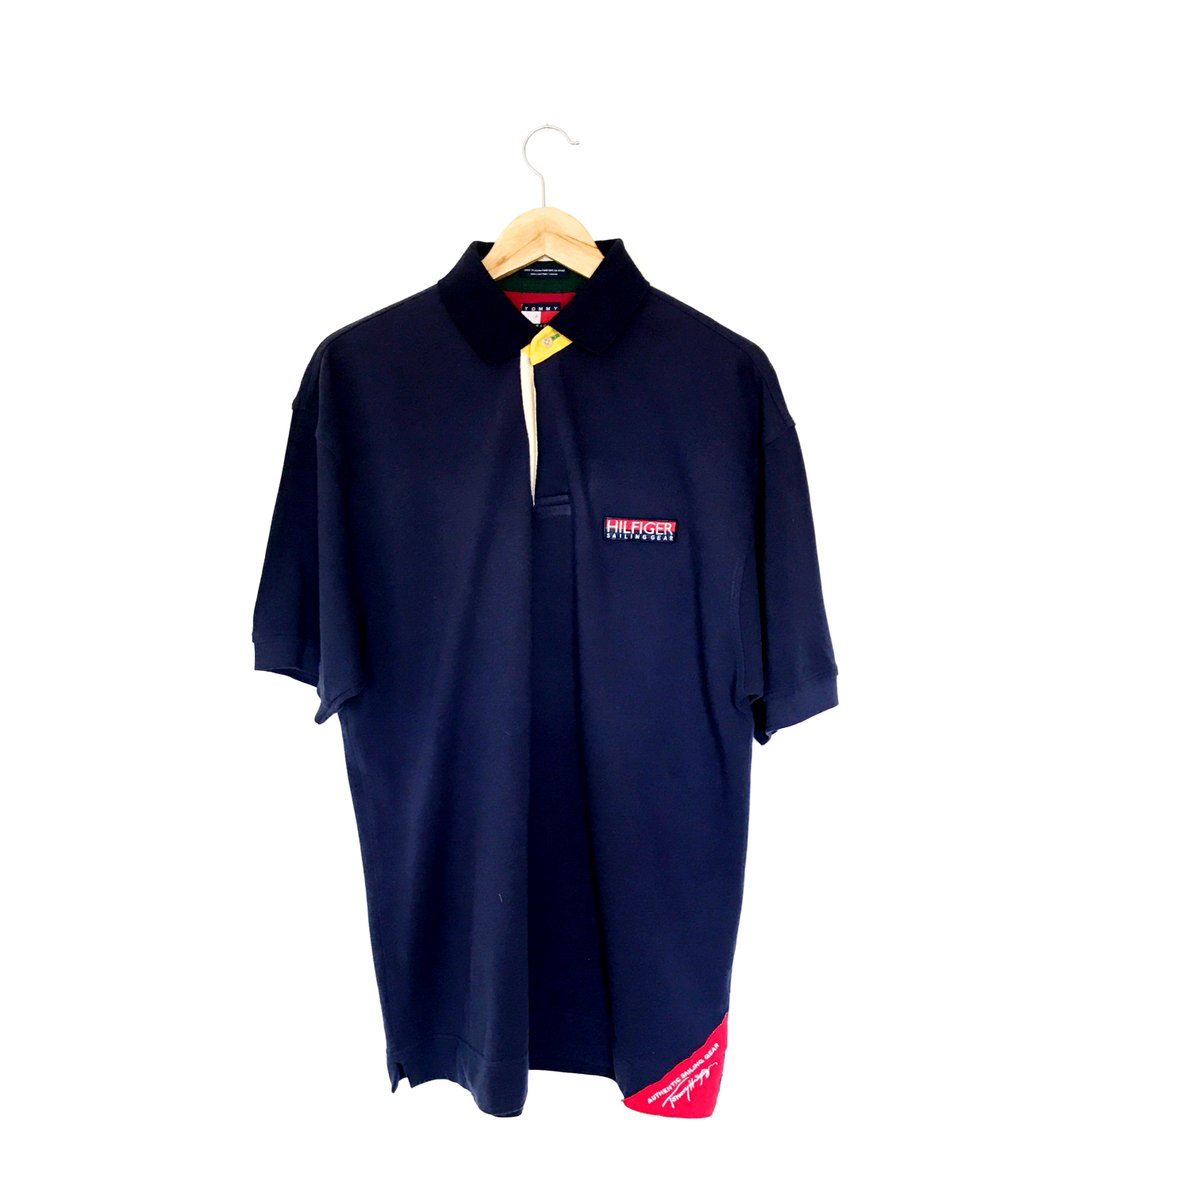 13f610b7 Tommy Hilfiger Sailing Gear polo added to the depop! Really rare and loud  this one. #TommyHilfiger #TimelessGarms pic.twitter.com/zU0VKvihcS